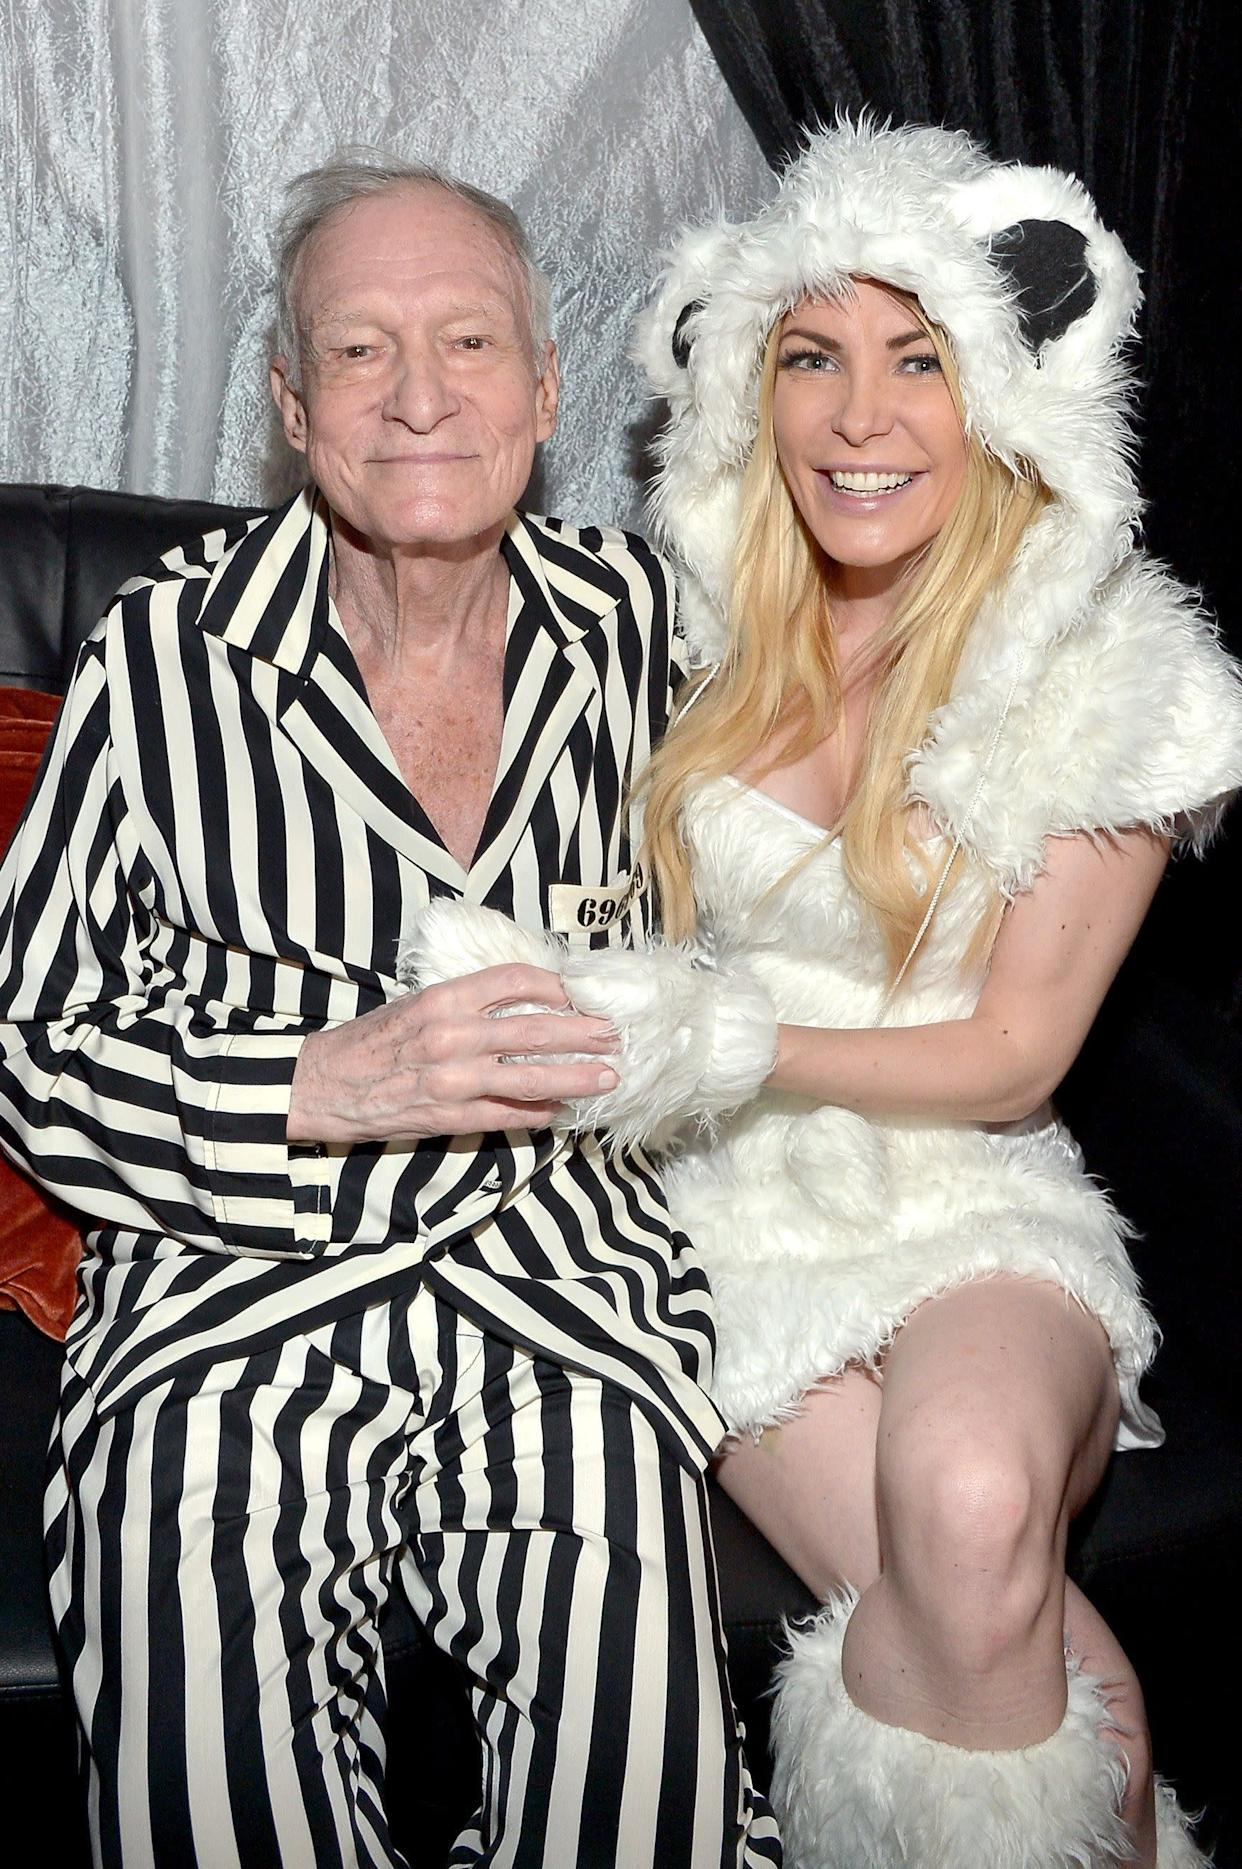 Hugh Hefner and wife Crystal Hefner attend the annual Halloween Party at the Playboy Mansion on Oct. 24, 2015. (Photo: Charley Gallay via Getty Images)